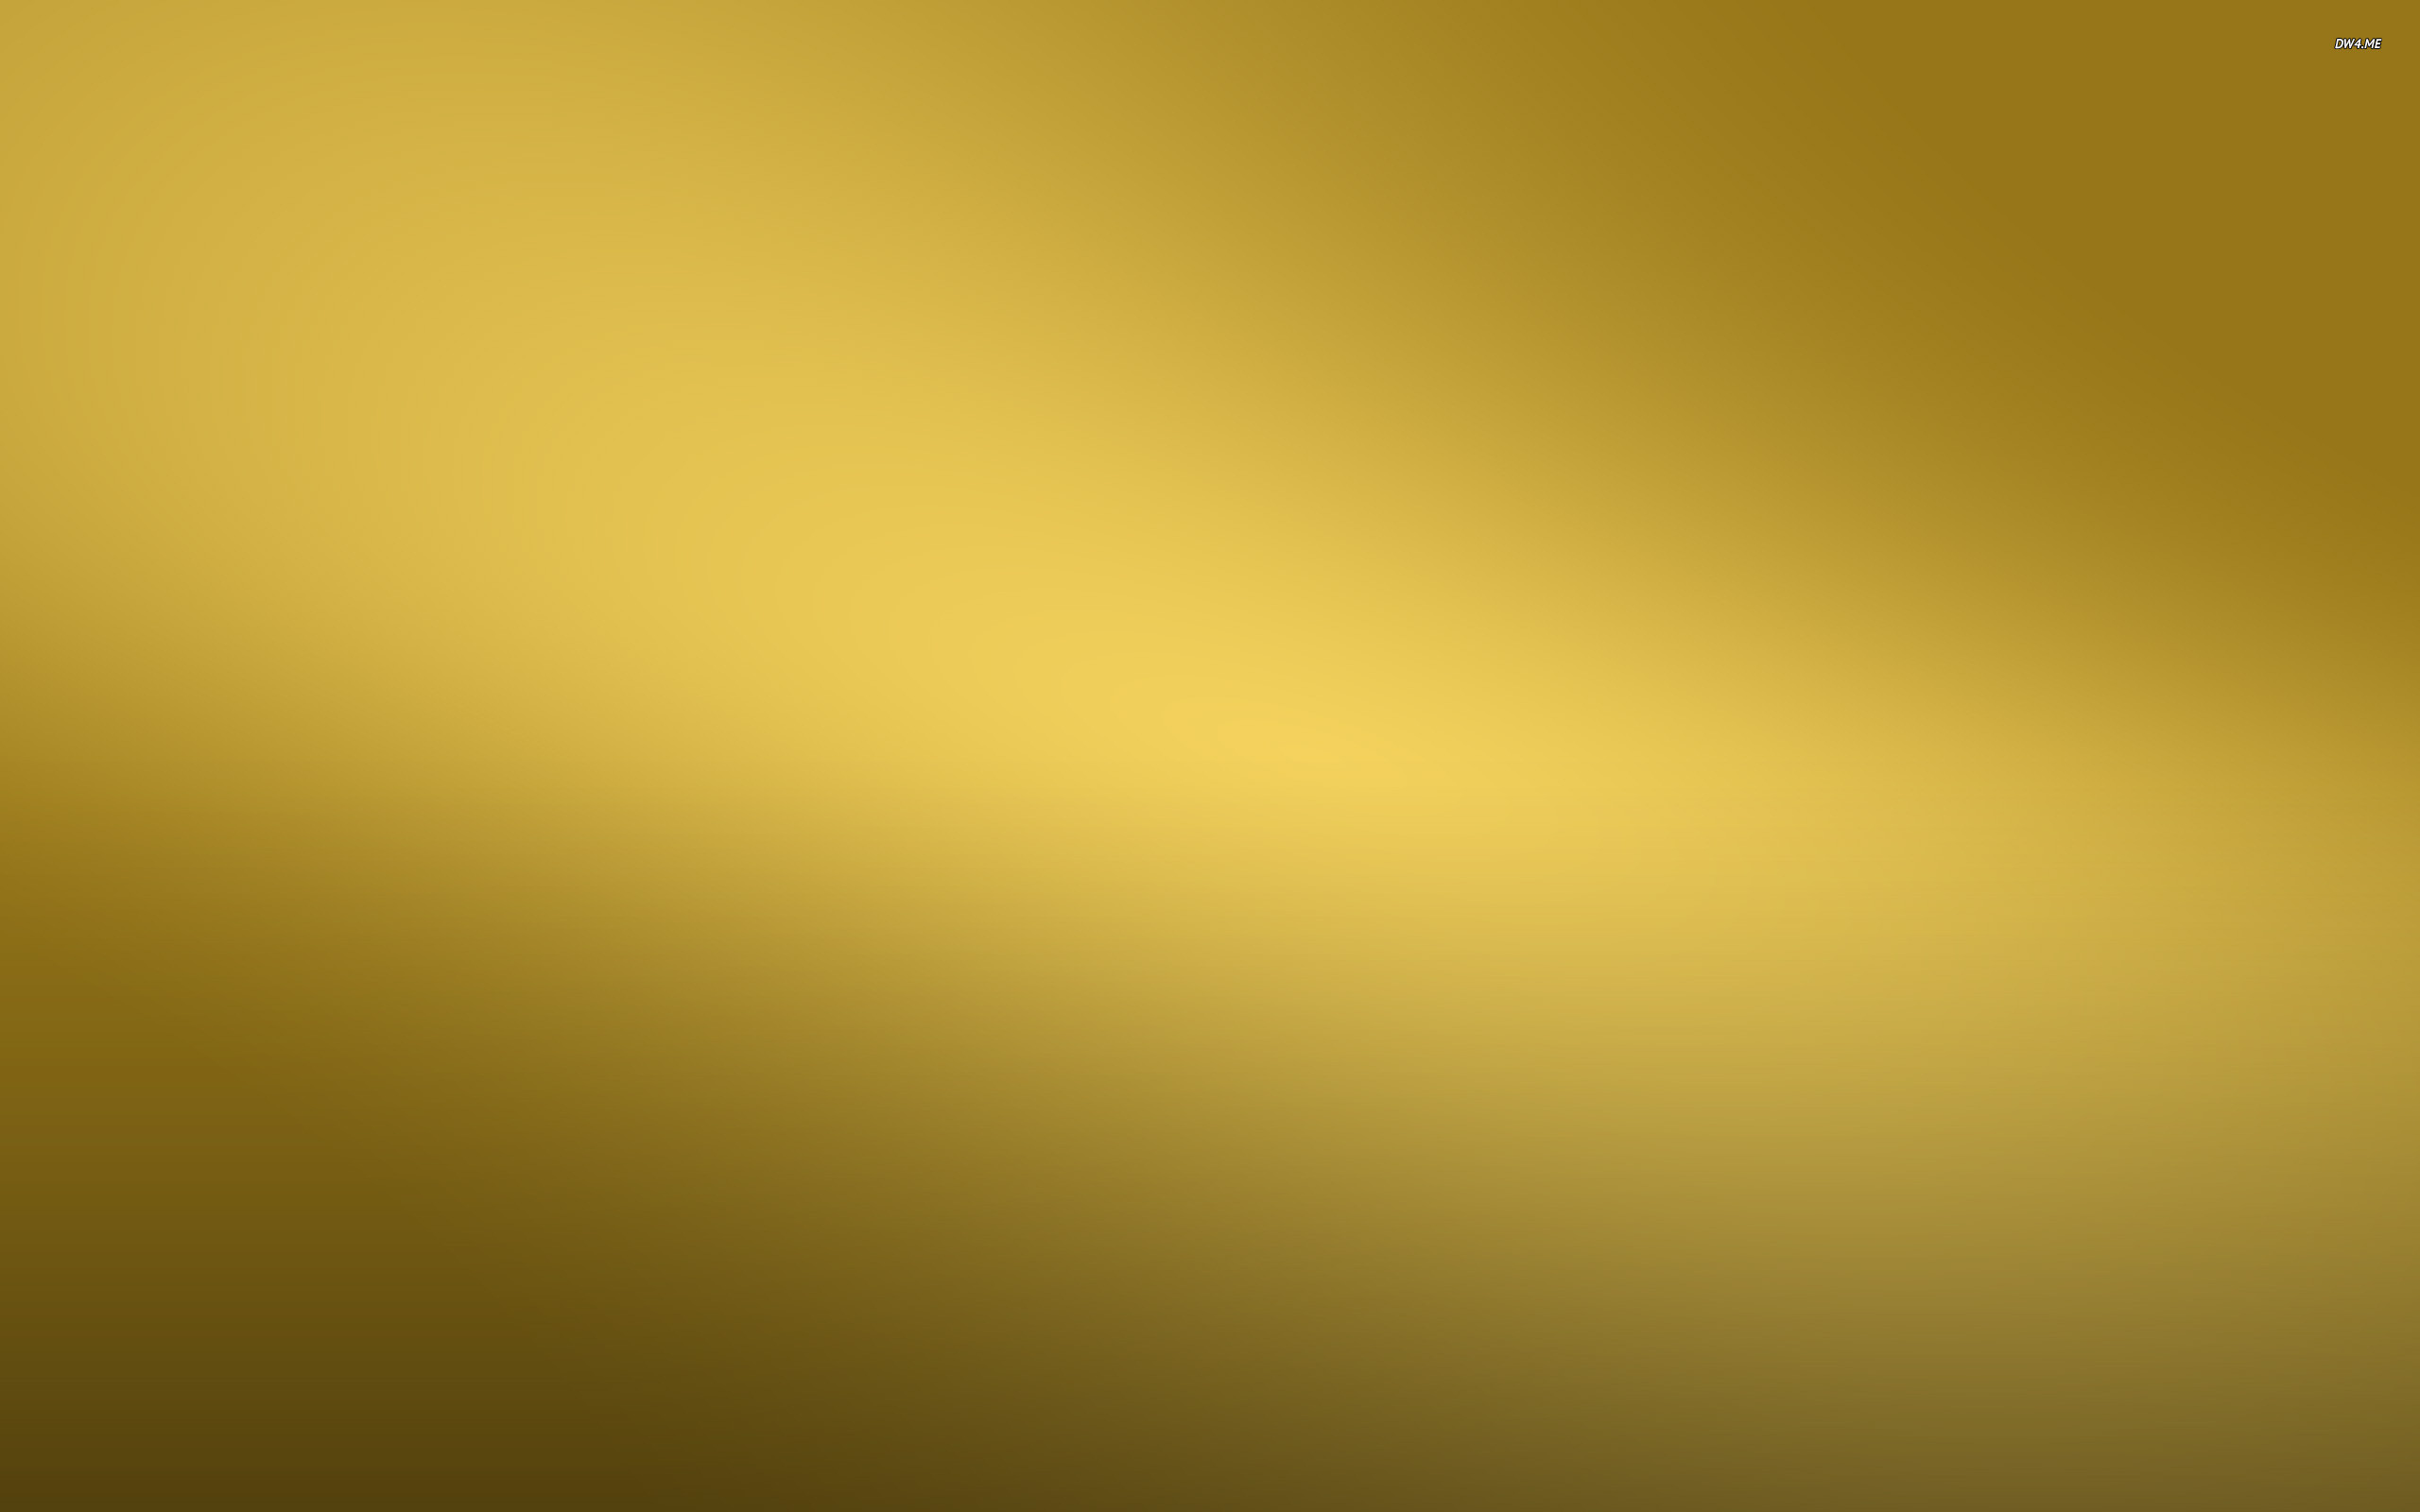 Gold Color Background 33 images 2560x1600